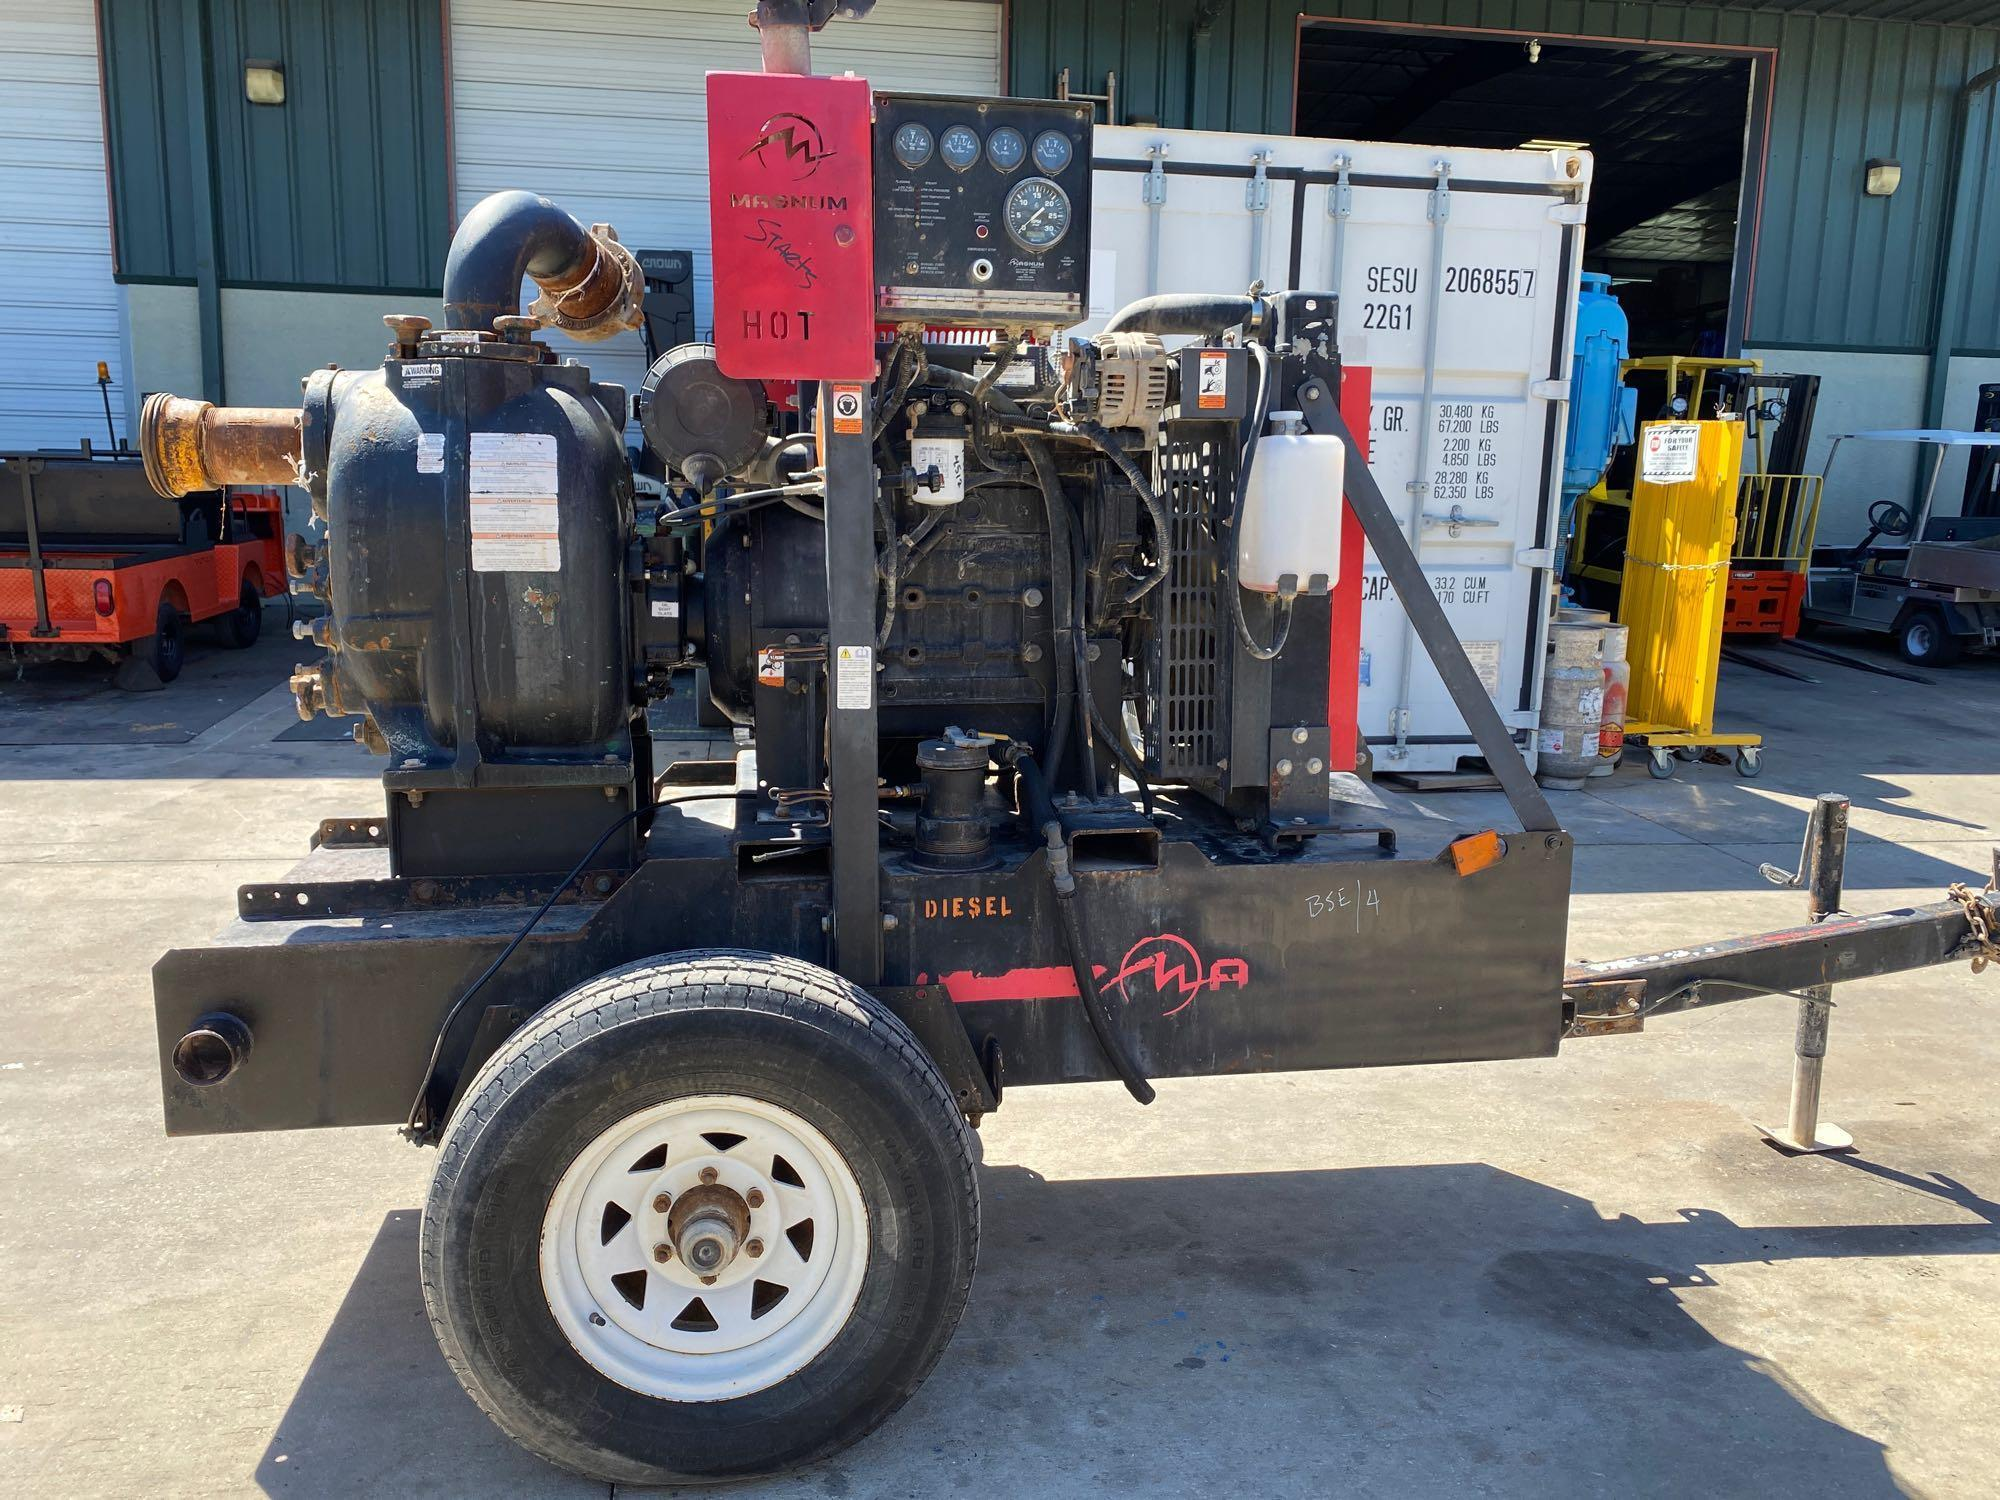 TRAILER MOUNTED MAGNUM 4 INCH DIESEL PUMP, RUNS AND OPERATES - Image 5 of 9